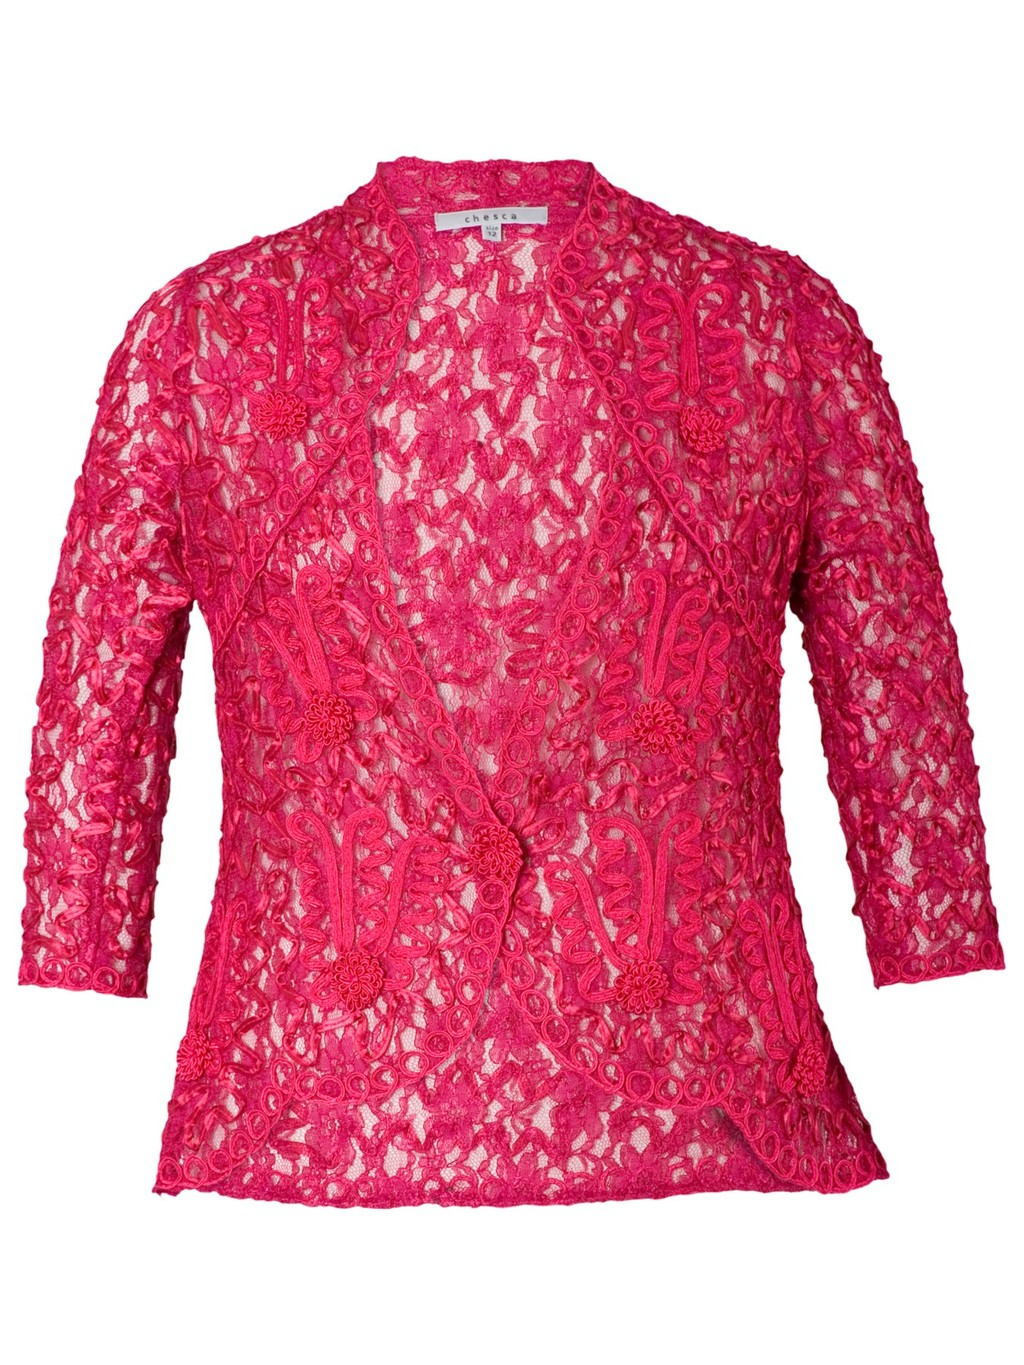 Cornelli Trimmed Lace Jacket - style: bolero/shrug; collar: round collar/collarless; occasions: evening, occasion; length: standard; fit: tailored/fitted; fibres: nylon - mix; sleeve length: 3/4 length; sleeve style: standard; texture group: lace; collar break: low/open; pattern type: fabric; pattern: patterned/print; predominant colour: raspberry; season: a/w 2013; wardrobe: event